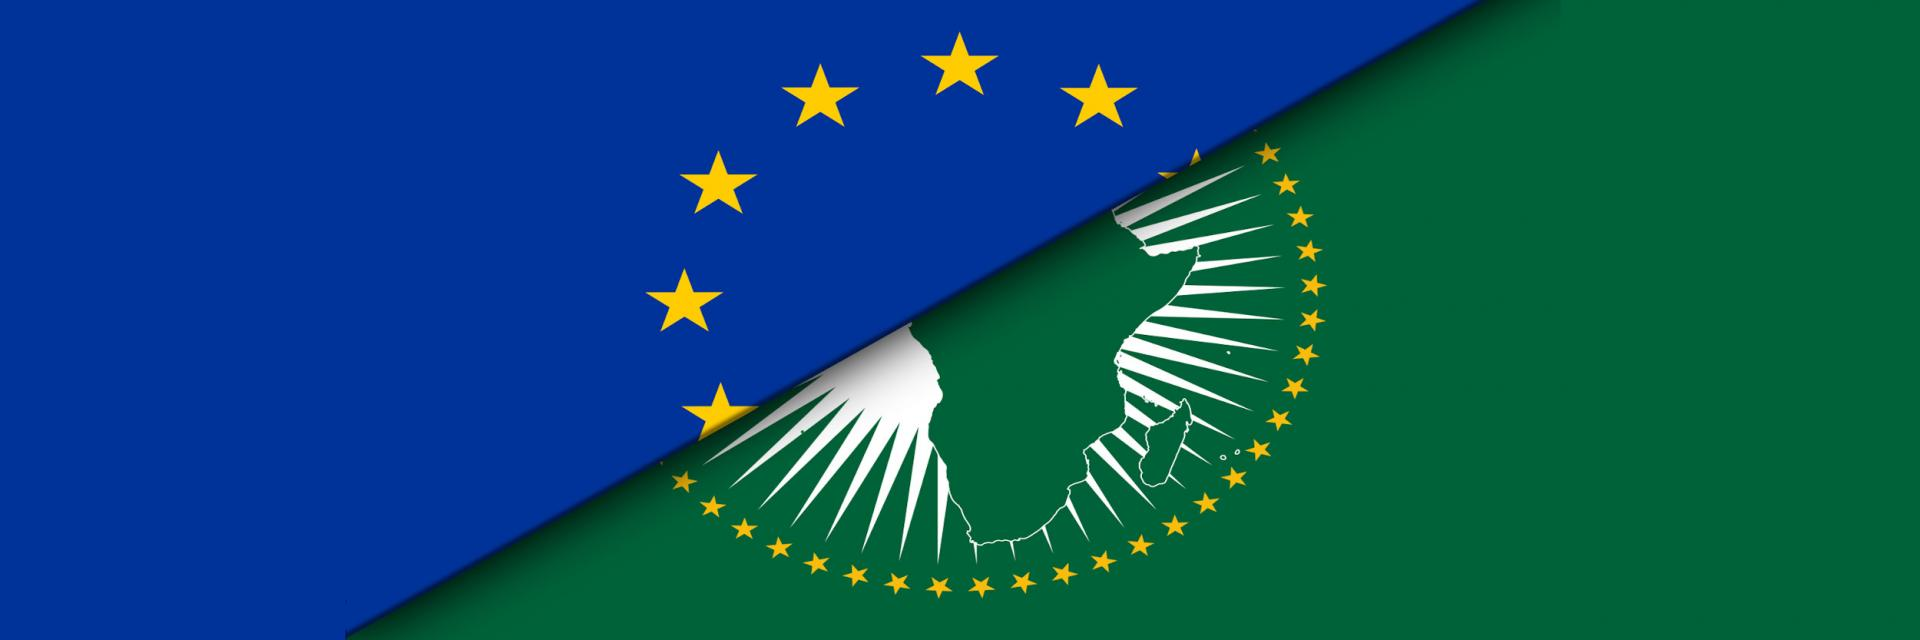 European Union, at ECA webinar, pledges stronger financial and political support for the African Continental Free Trade Area (AfCFTA)